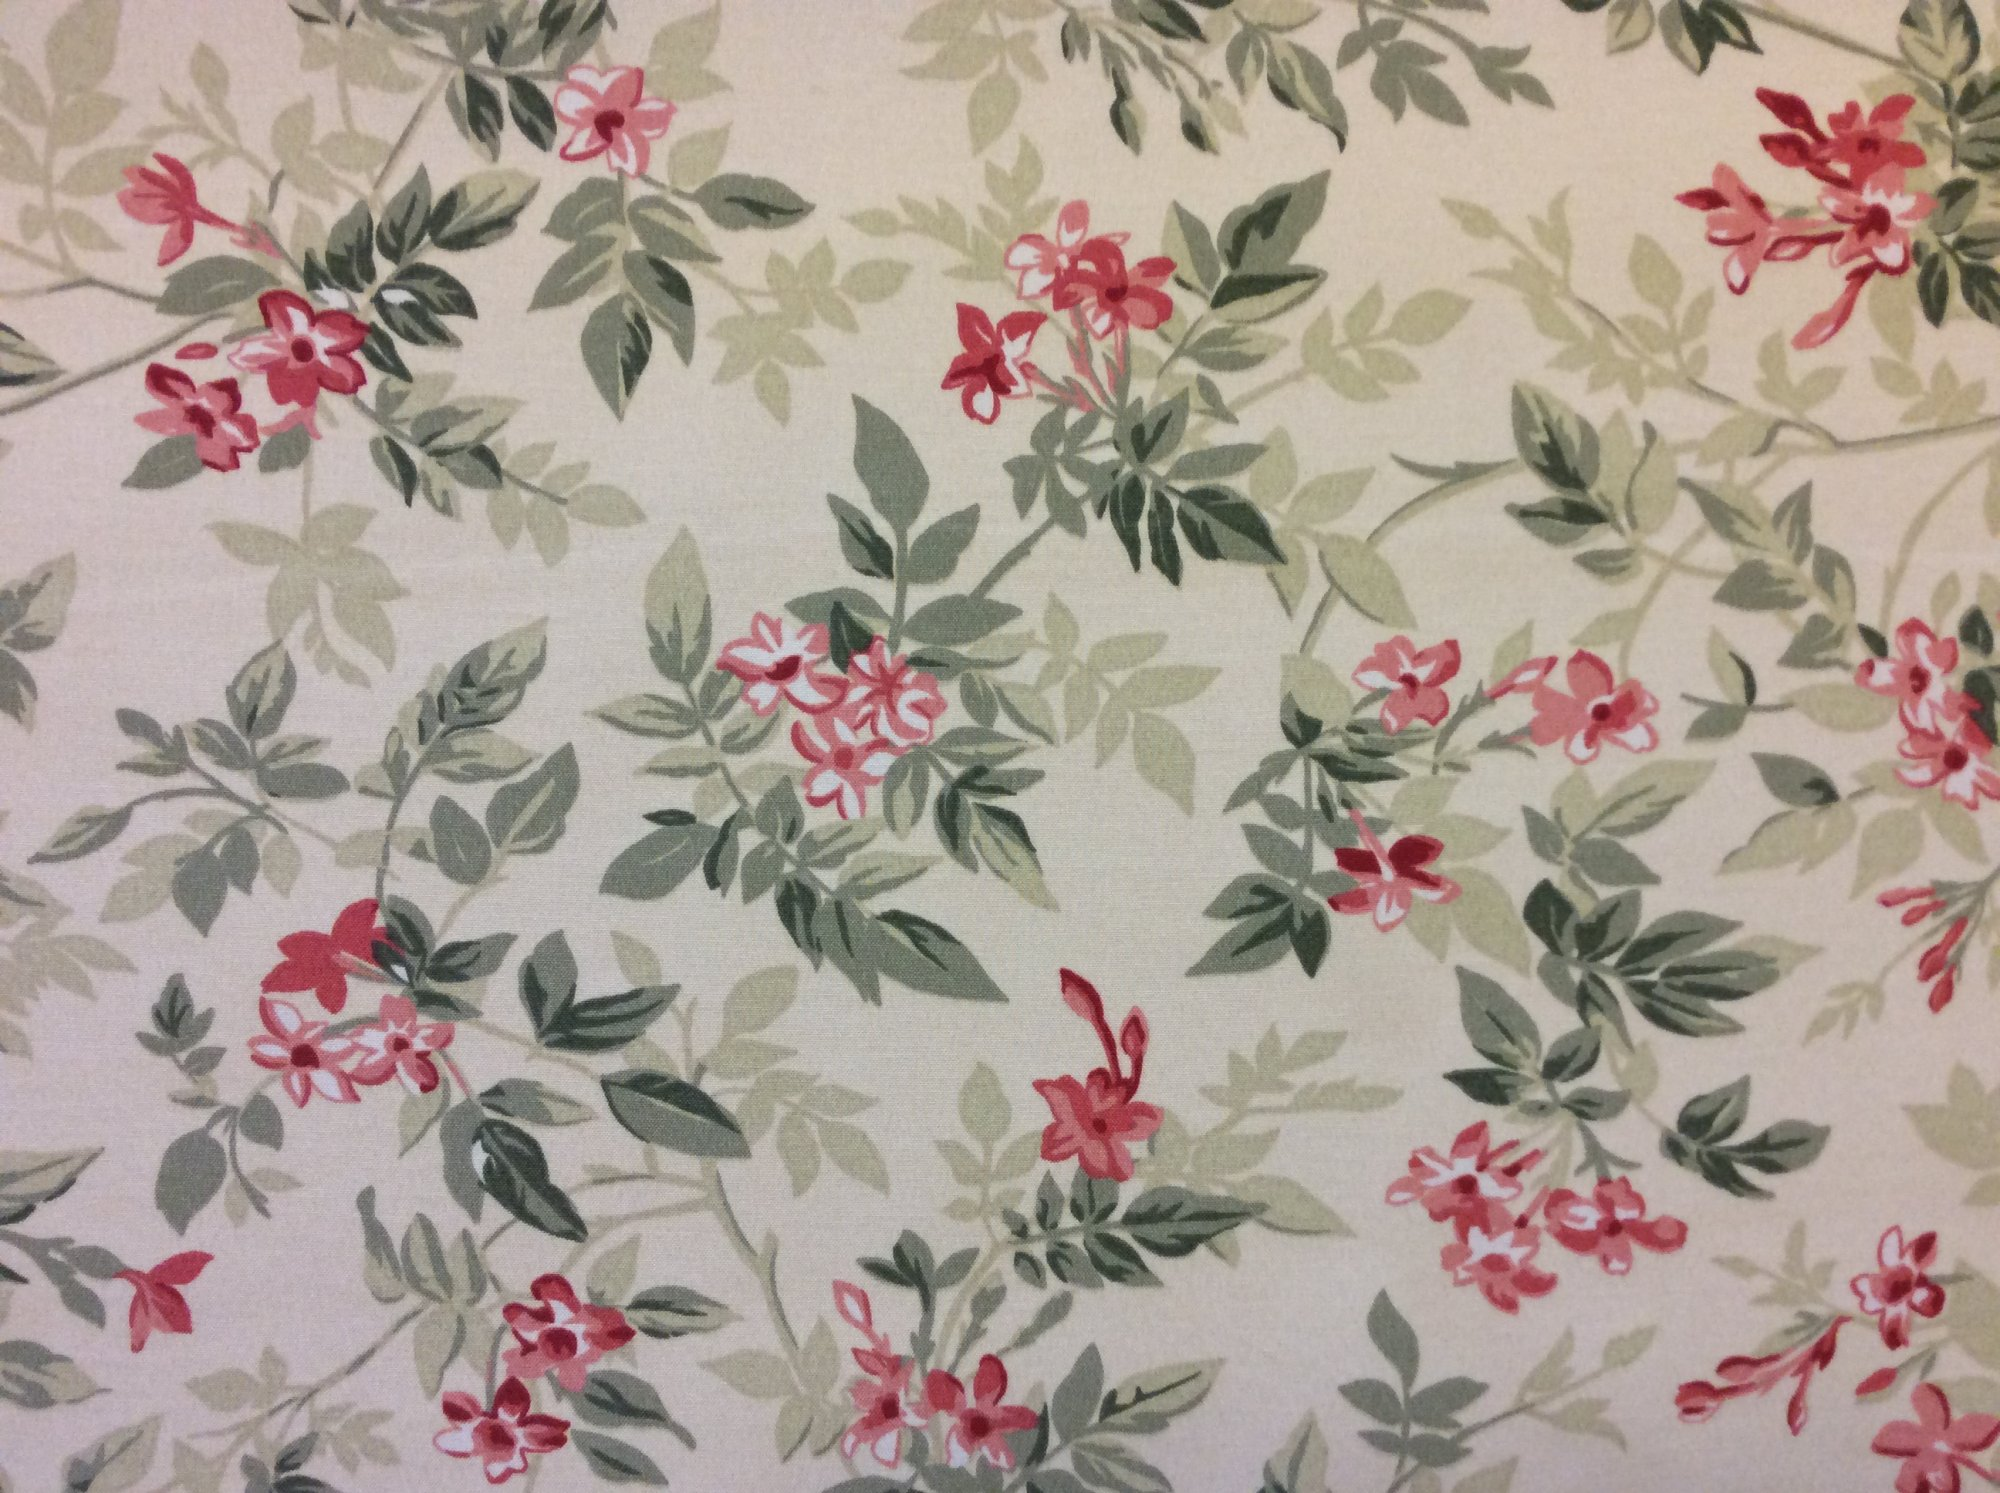 Floral Shabby Vintage Style Floral Antique Style Print Soft Outdoor Fabric S559